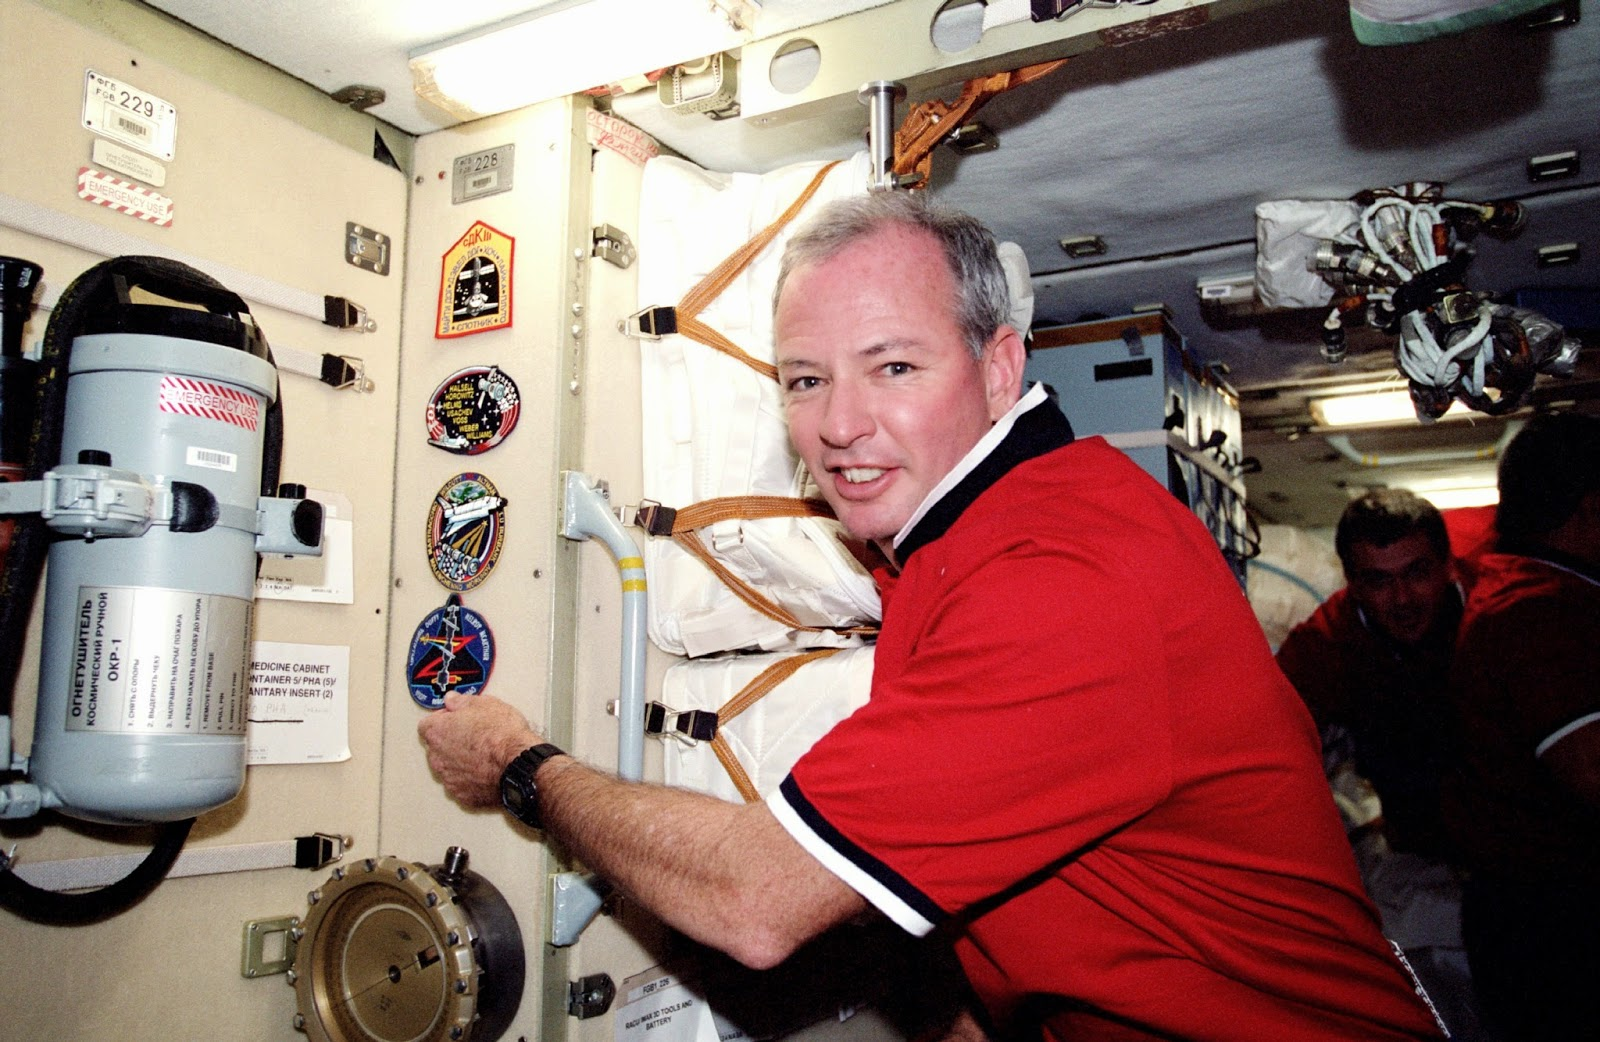 Astronaut Brian Duffy, mission commander, adds the STS-92 patch to the growing collection of those representing Shuttle crews who have worked on the International Space Station (ISS). A location in the functional cargo block (FGB) or Zarya serves as the traditional posting site for the patches. Credit: NASA